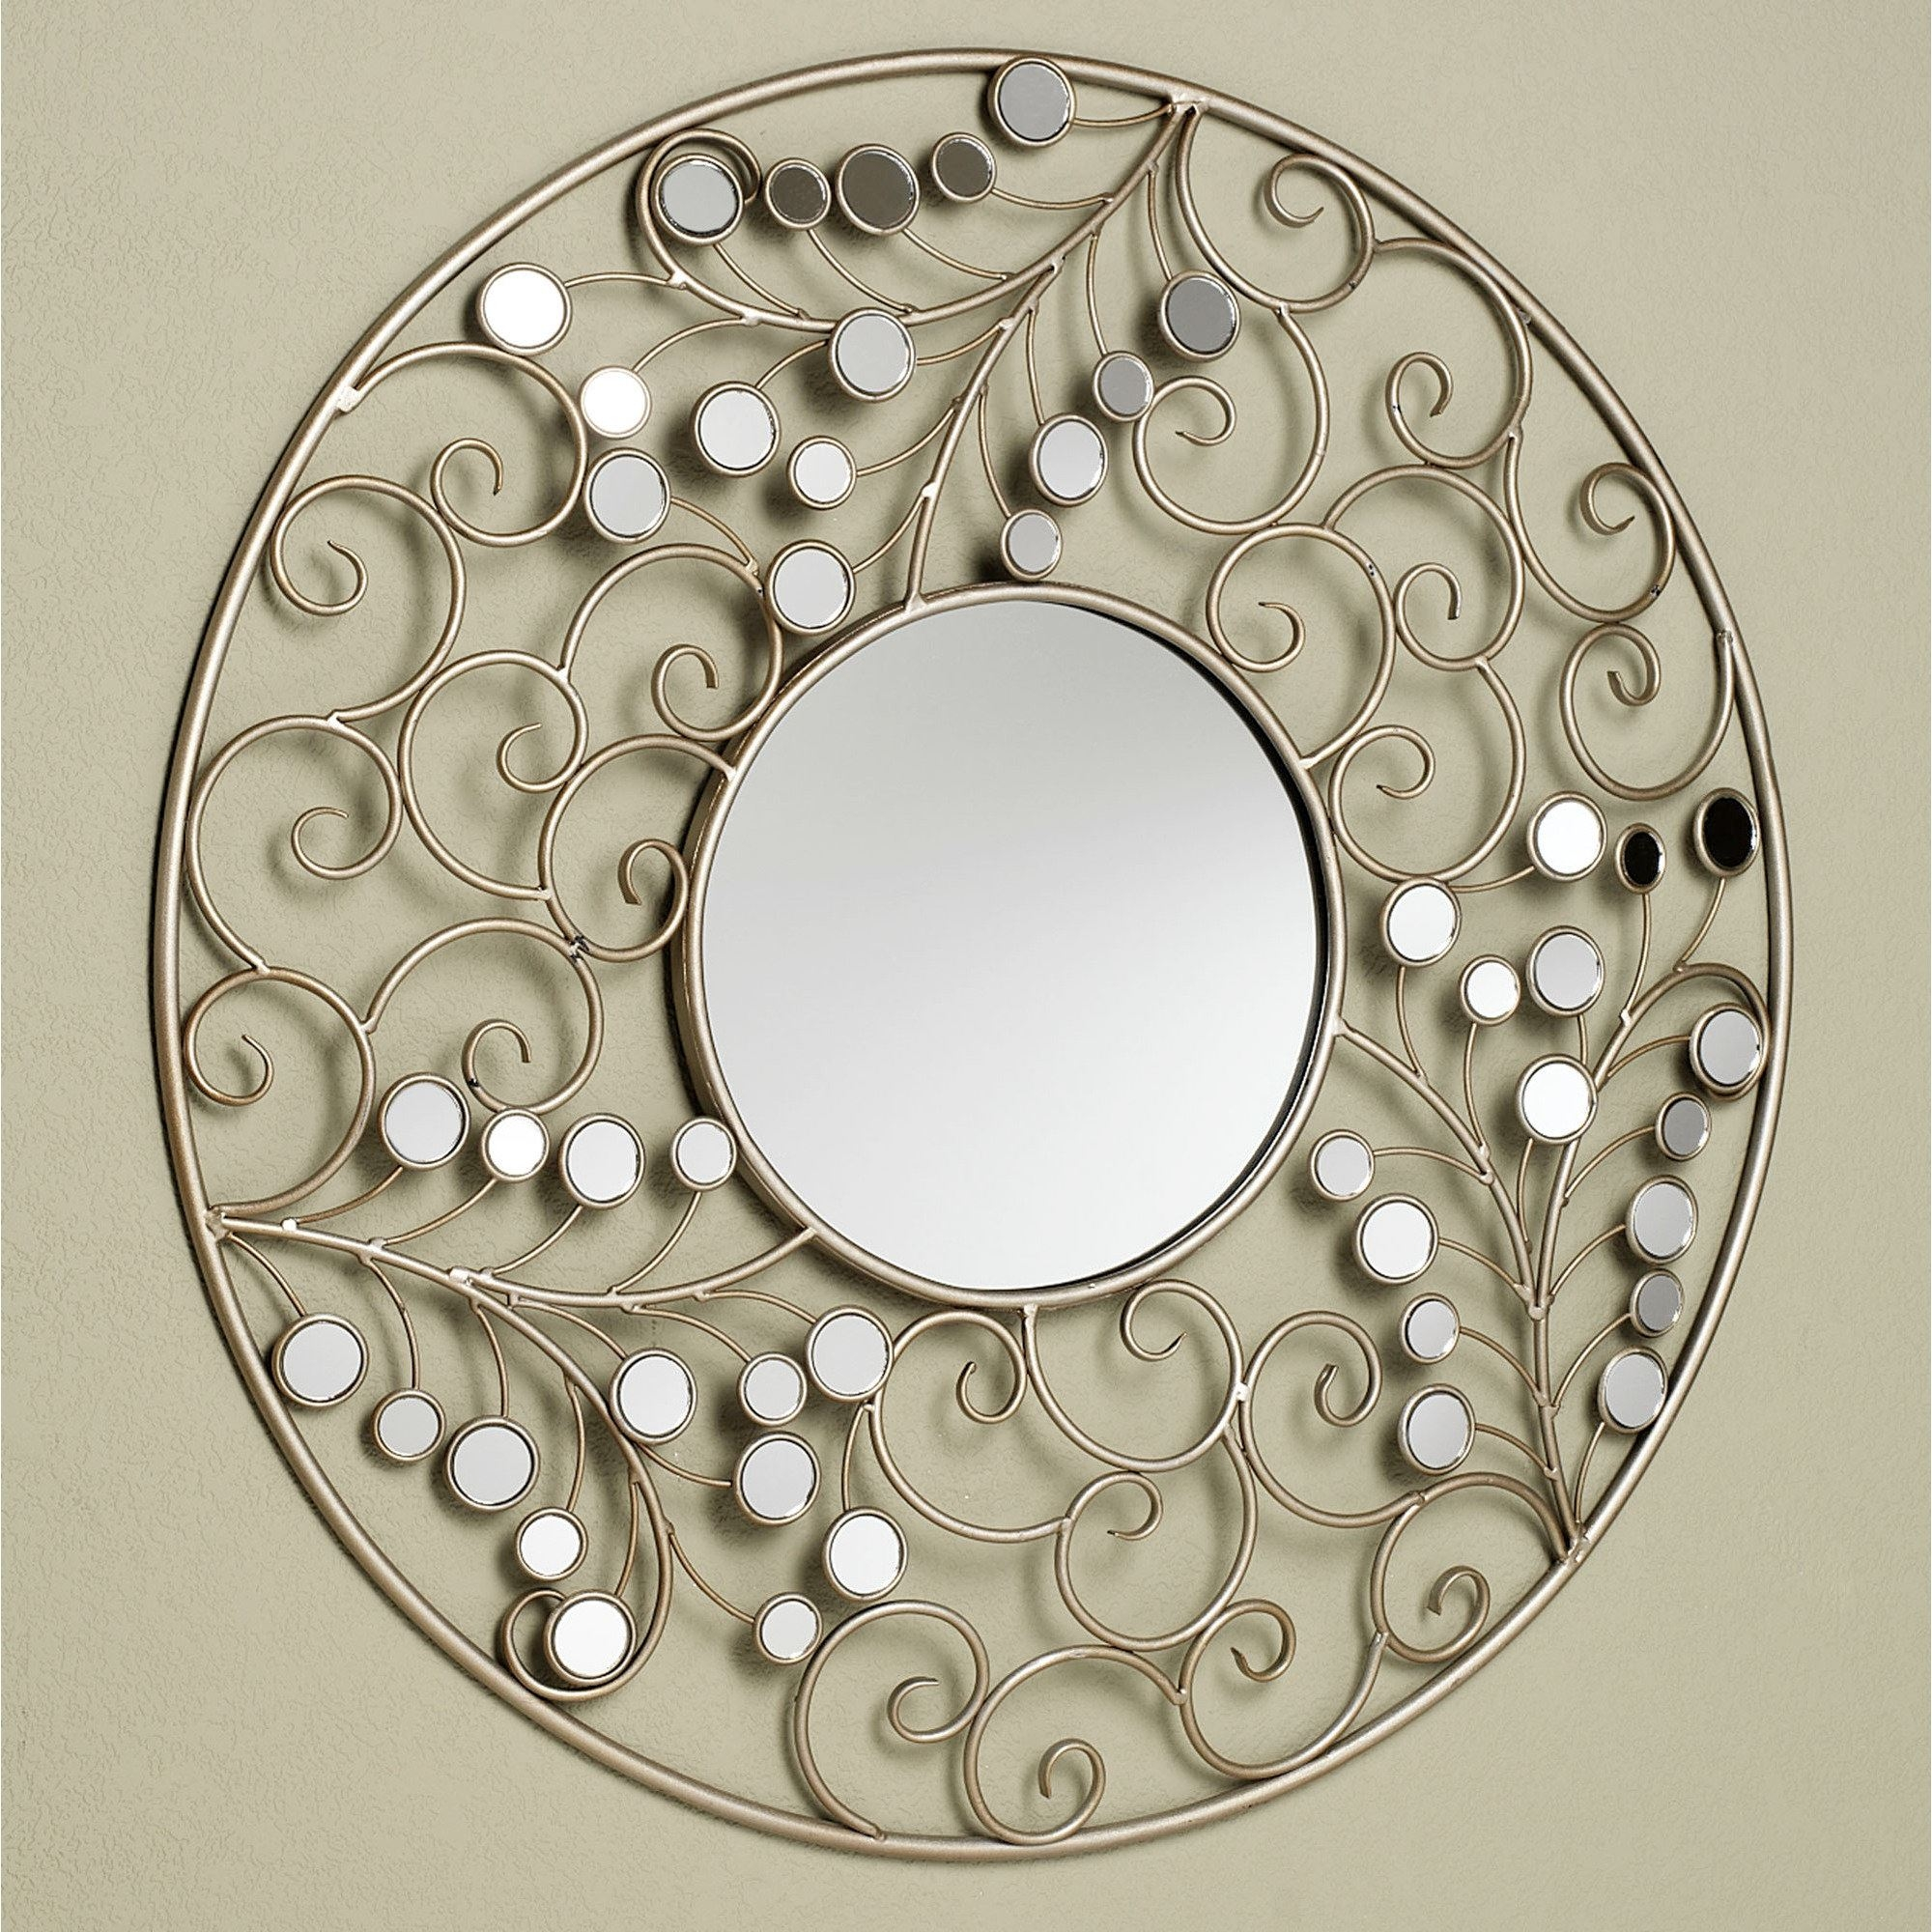 Alyssia Round Metal Wall Mirror Intended For Champagne Wall Mirror (View 10 of 15)